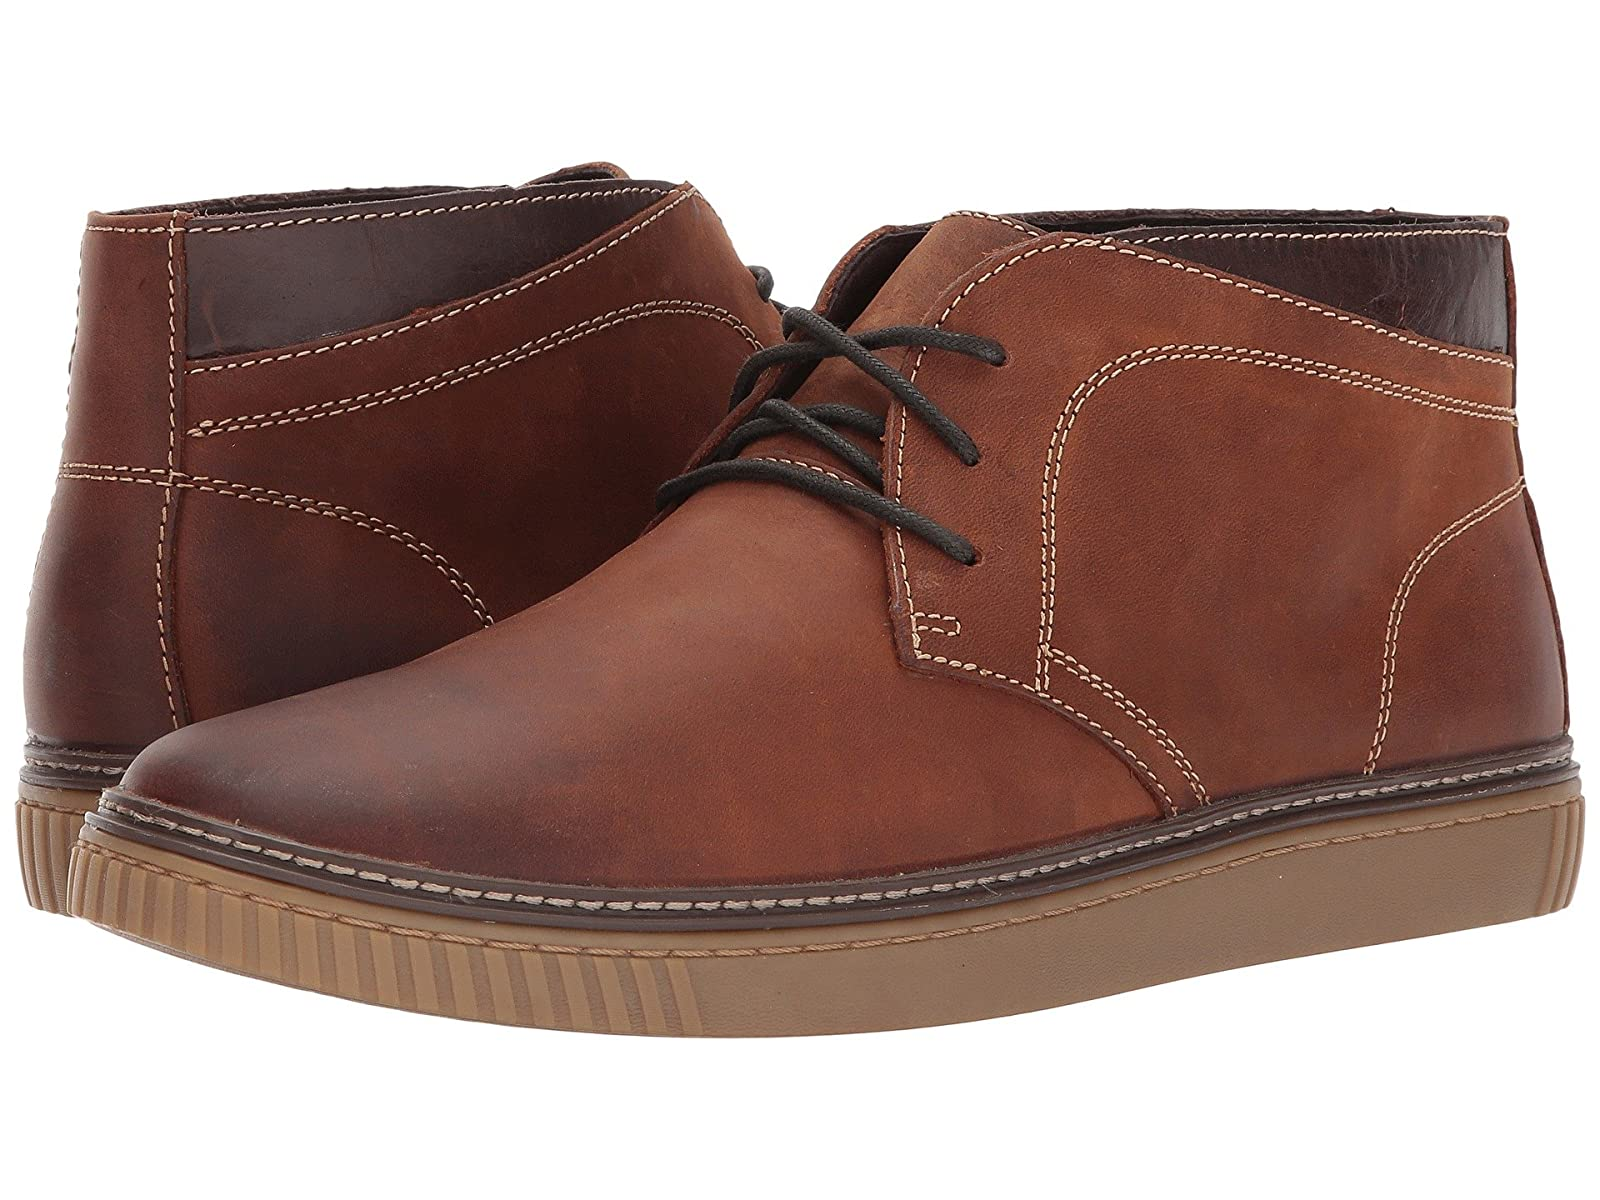 Johnston & Murphy Wallace Casual Chukka BootAffordable and distinctive shoes